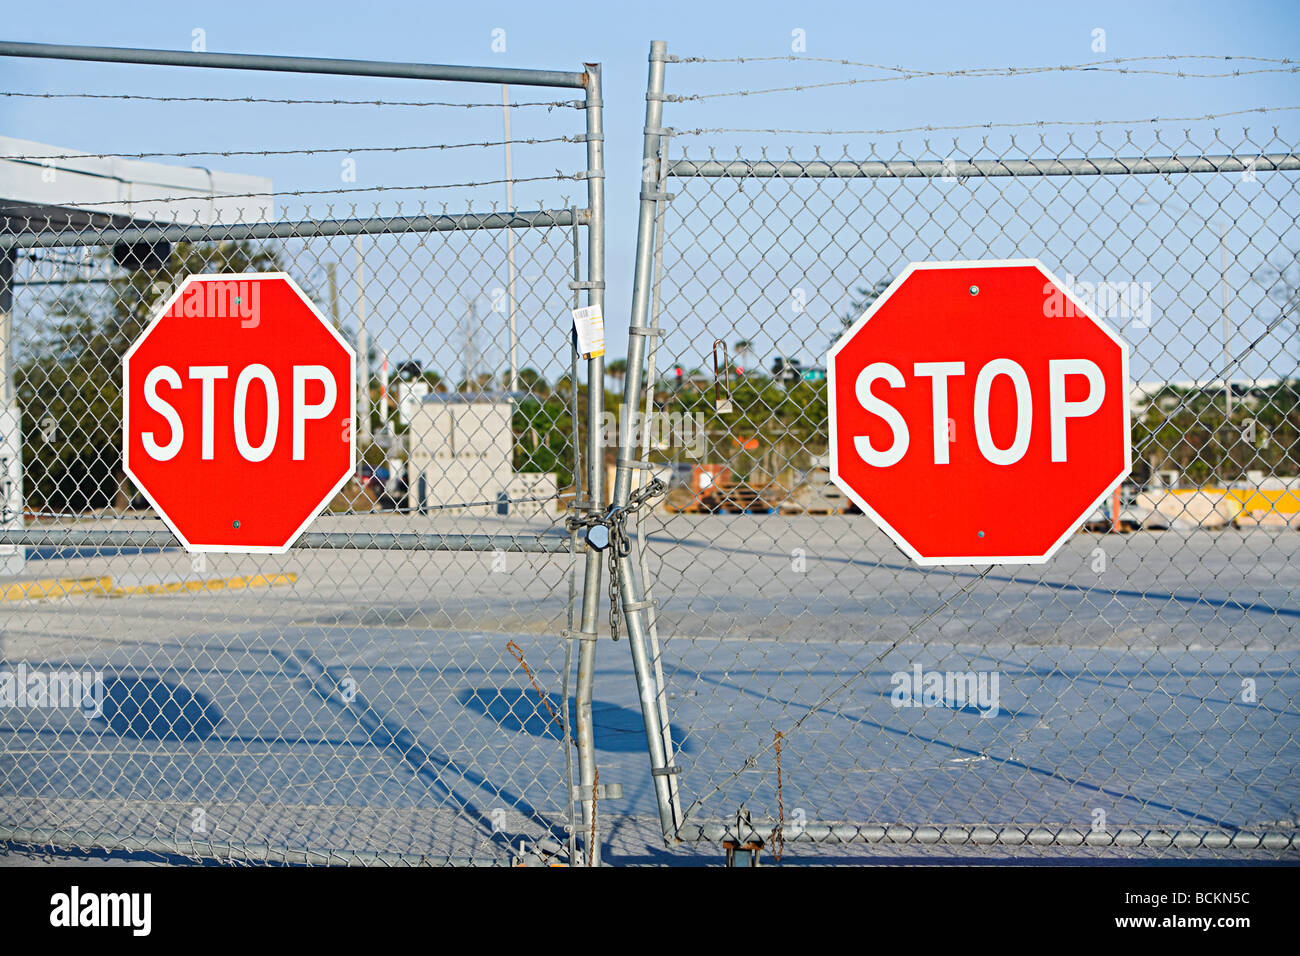 Stop signs on gates - Stock Image